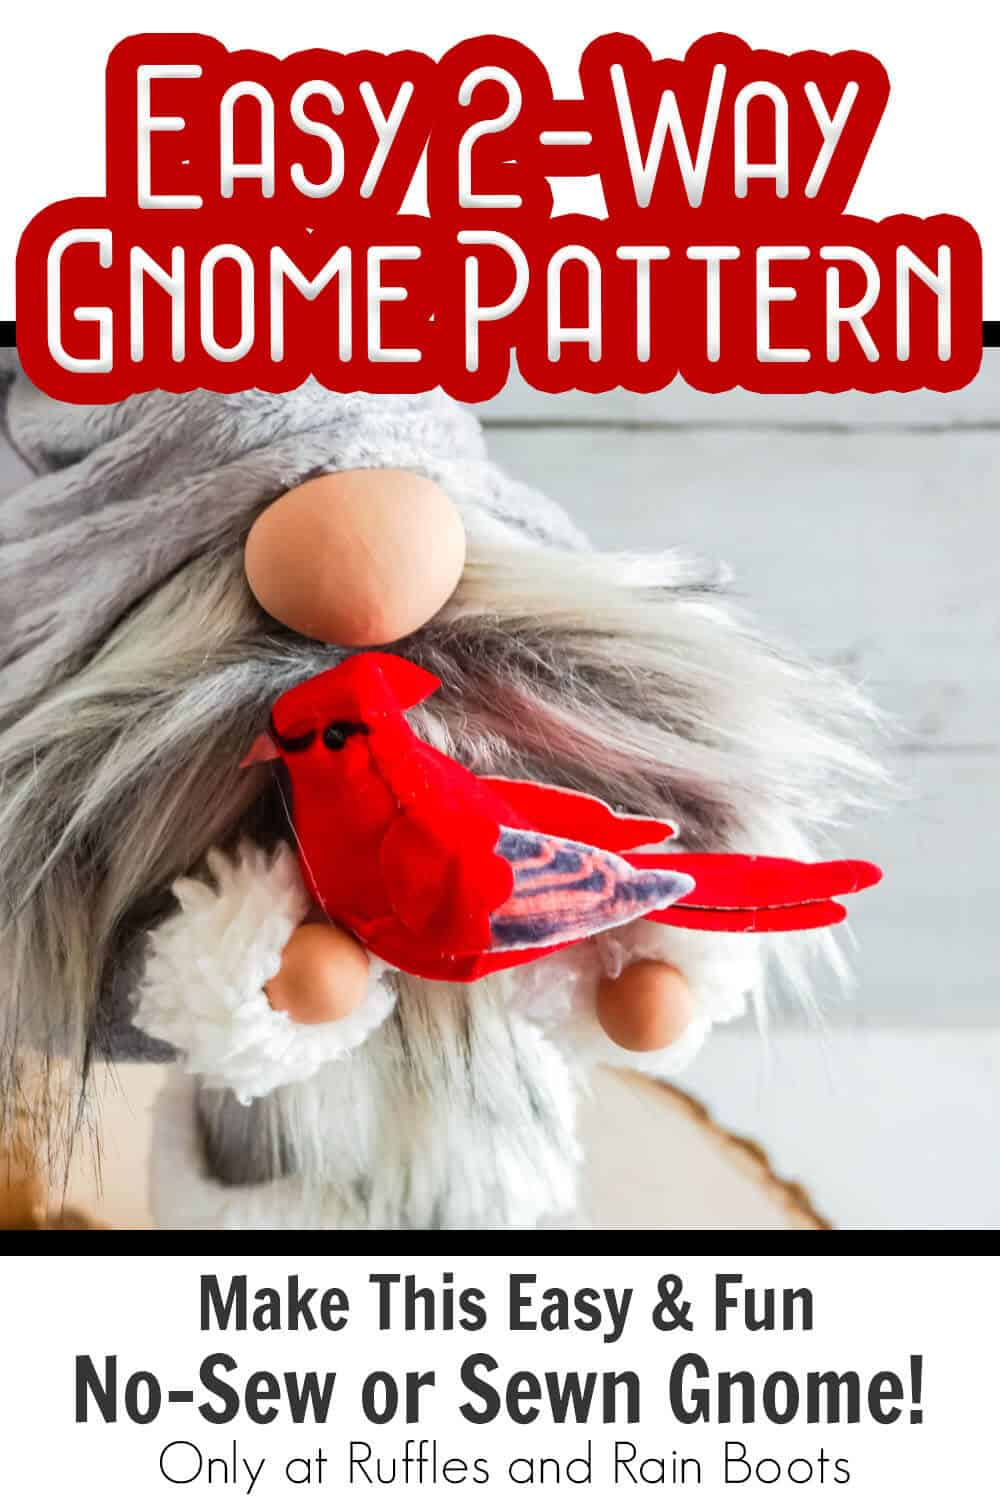 gnome that can be made with sewing or no-sew with text which reads easy 2-way gnome pattern make this easy & fun no-sew or sewn gnome!